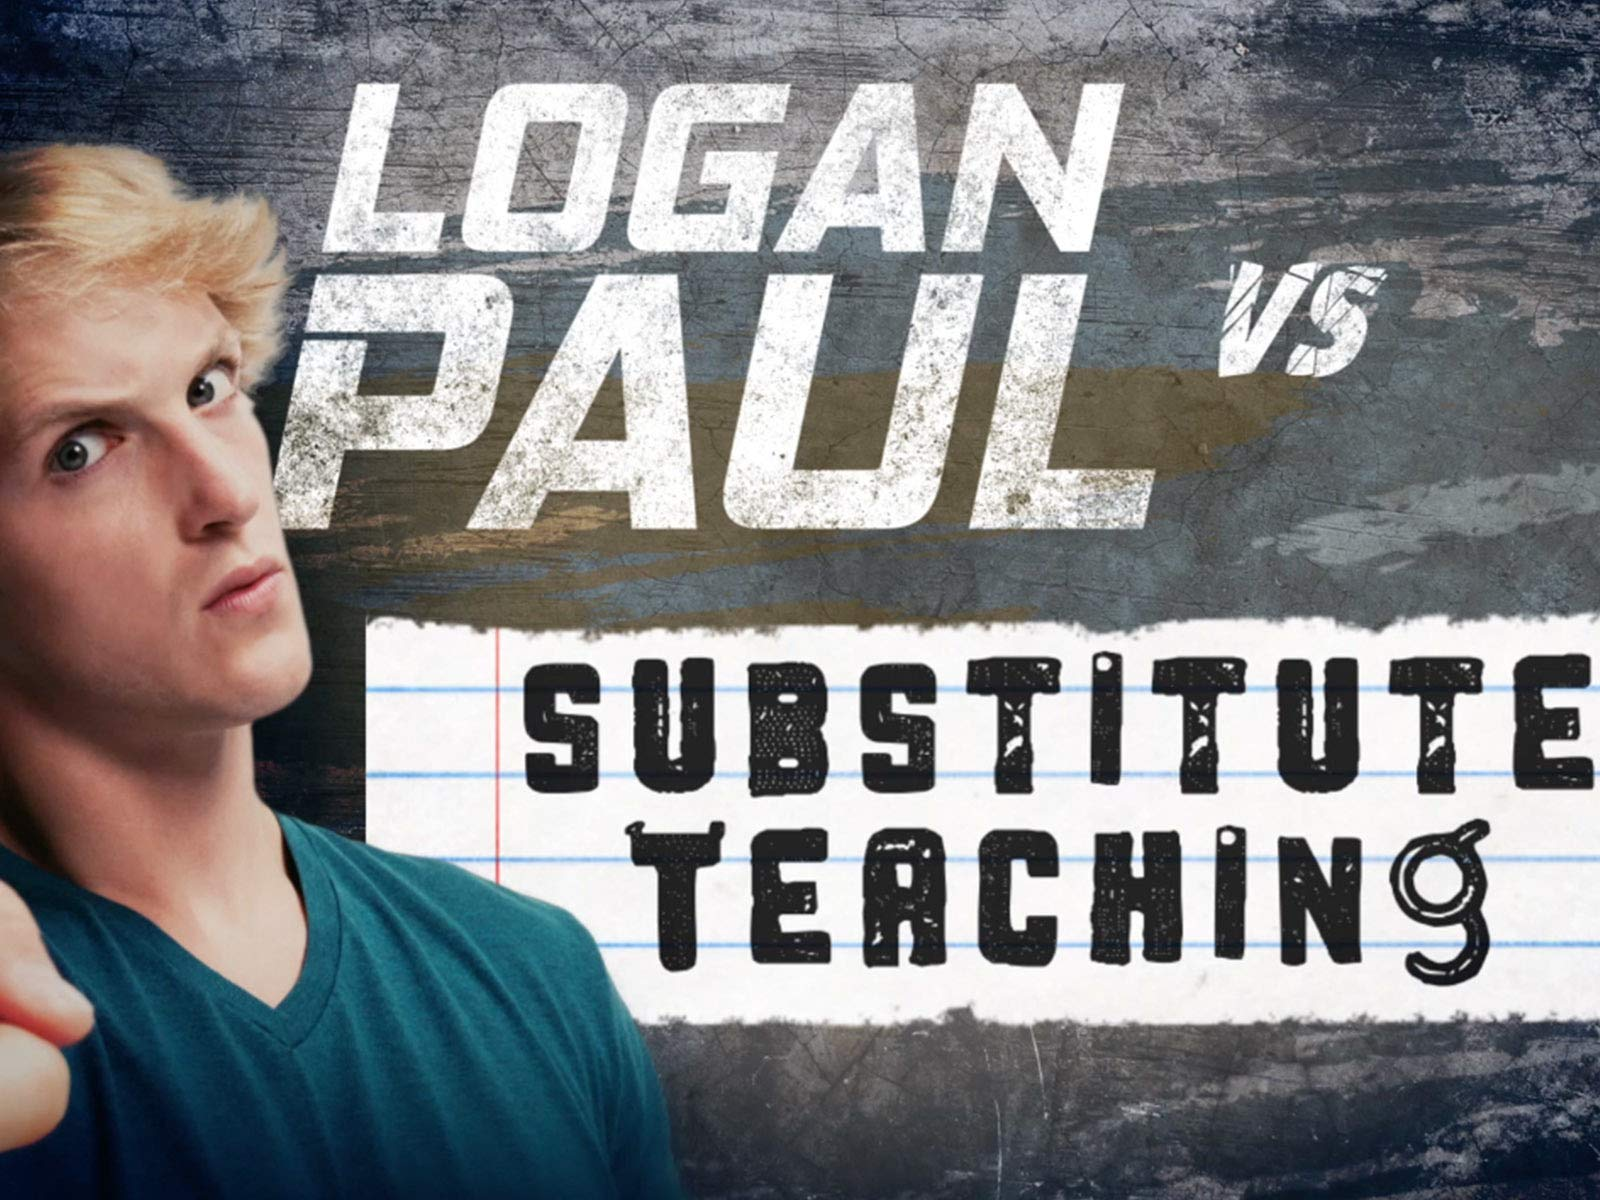 Amazon.com: Logan Paul Vs: Logan Paul, Bennet Silverman ...